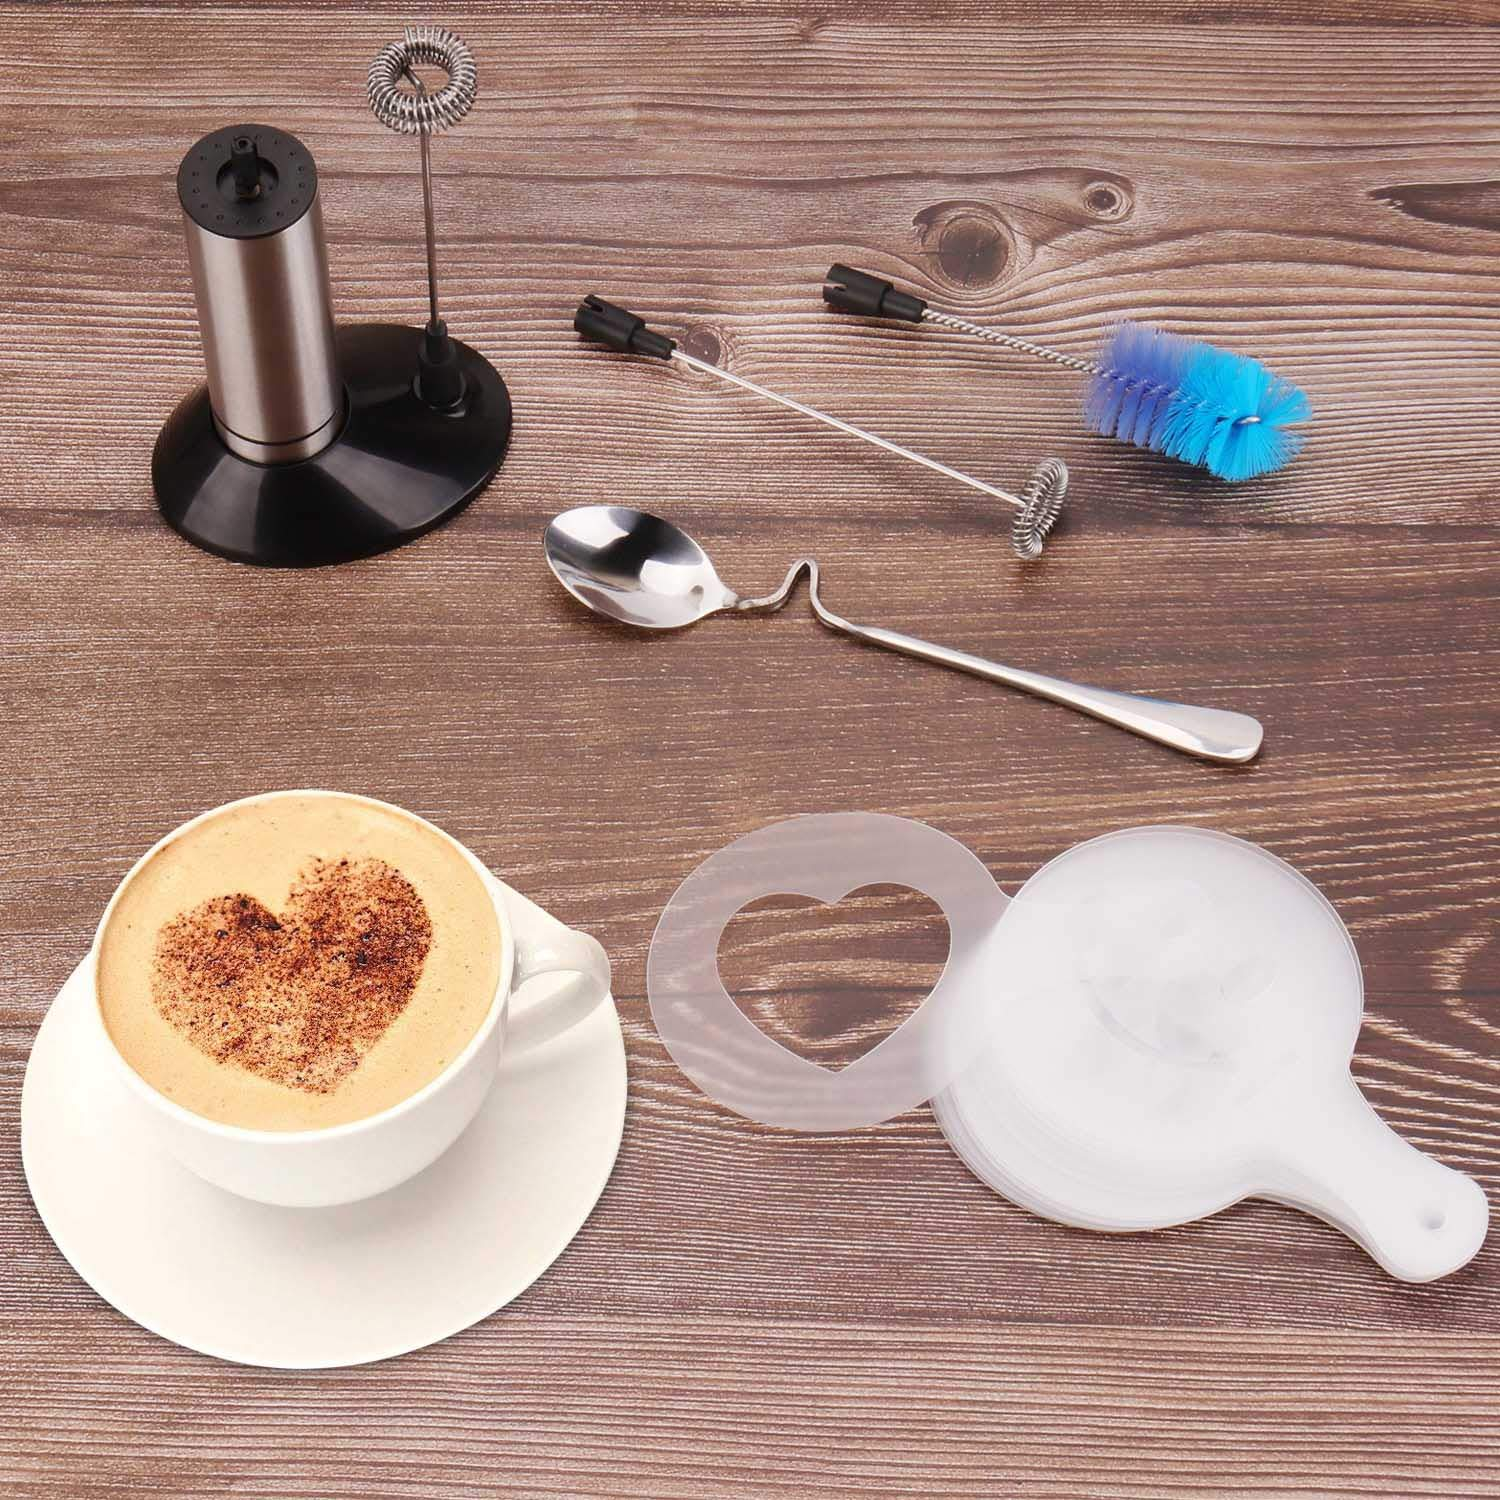 Portable Milk Frother, PEMOTech [3 in 1] Electric Milk Forther with Mix Spoon & 16 PCS Art Stencils, Handheld Frother Foam Maker with Double & Single Spring Whisk Head for Coffee, Cappuccino, Latte by PEMOTech (Image #8)